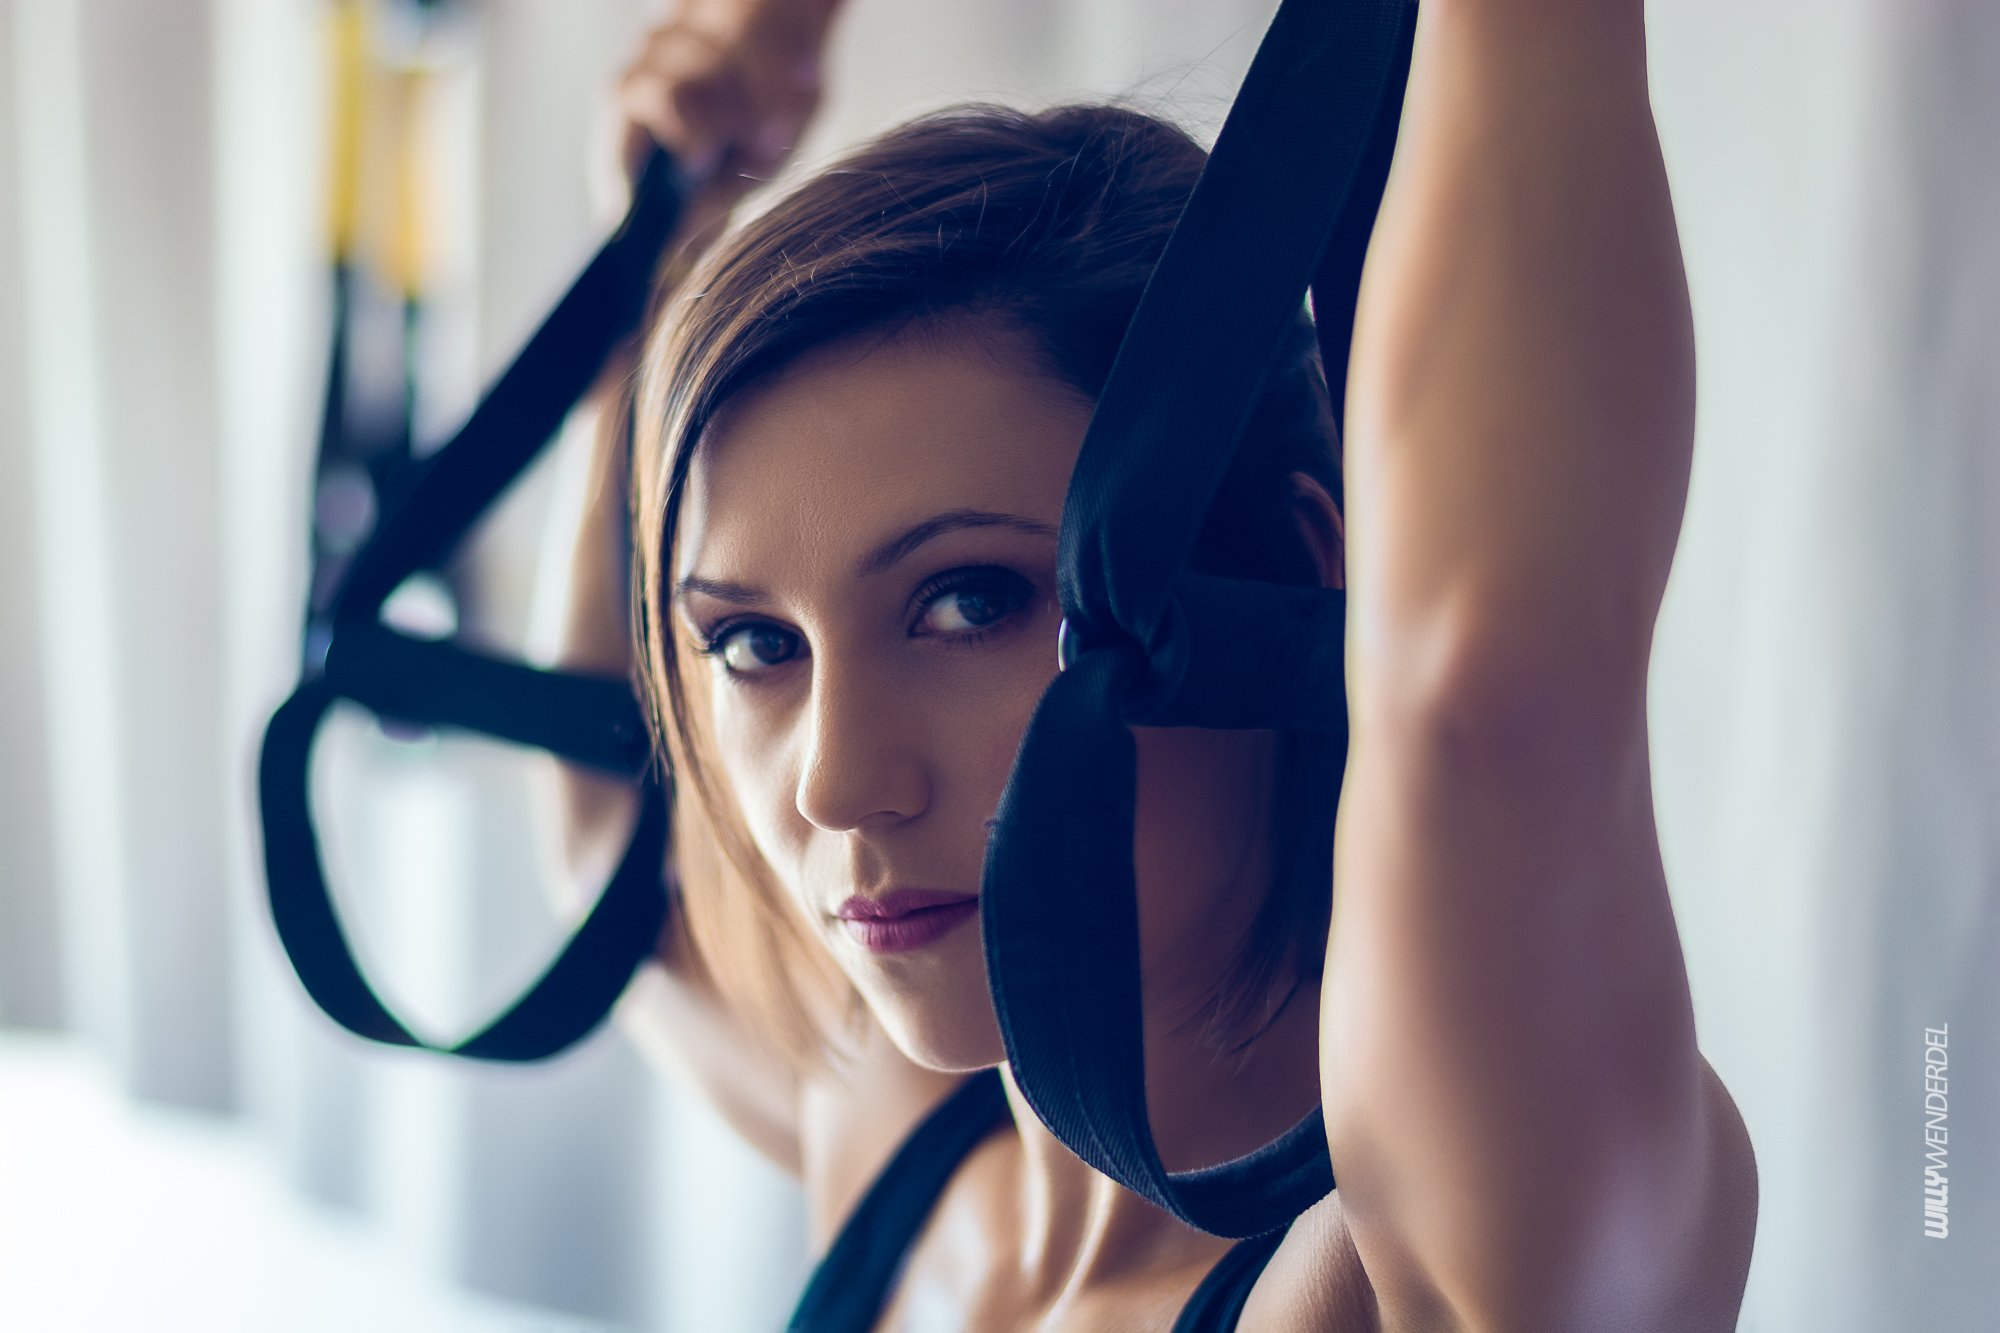 Work It Out (The TRX Session)